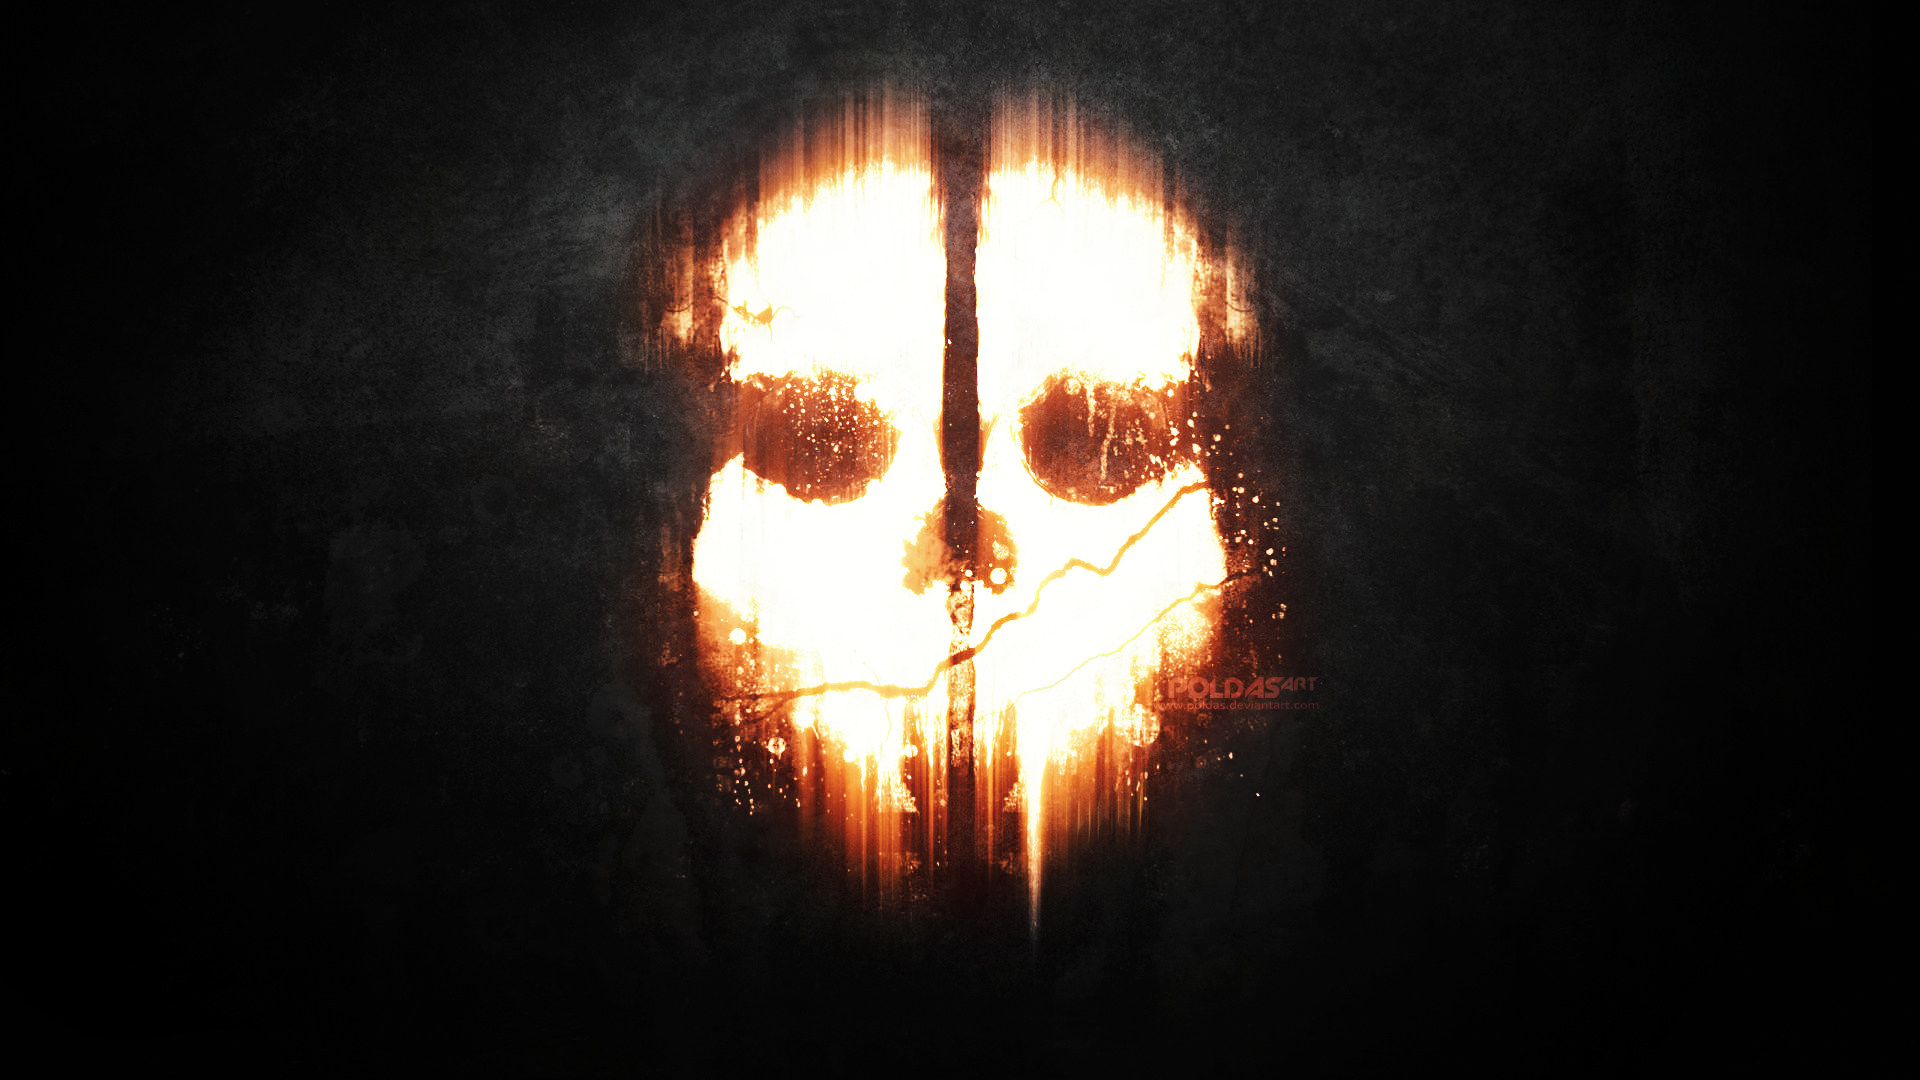 call of duty ghosts dark mask skull wallpaper 1920x1080